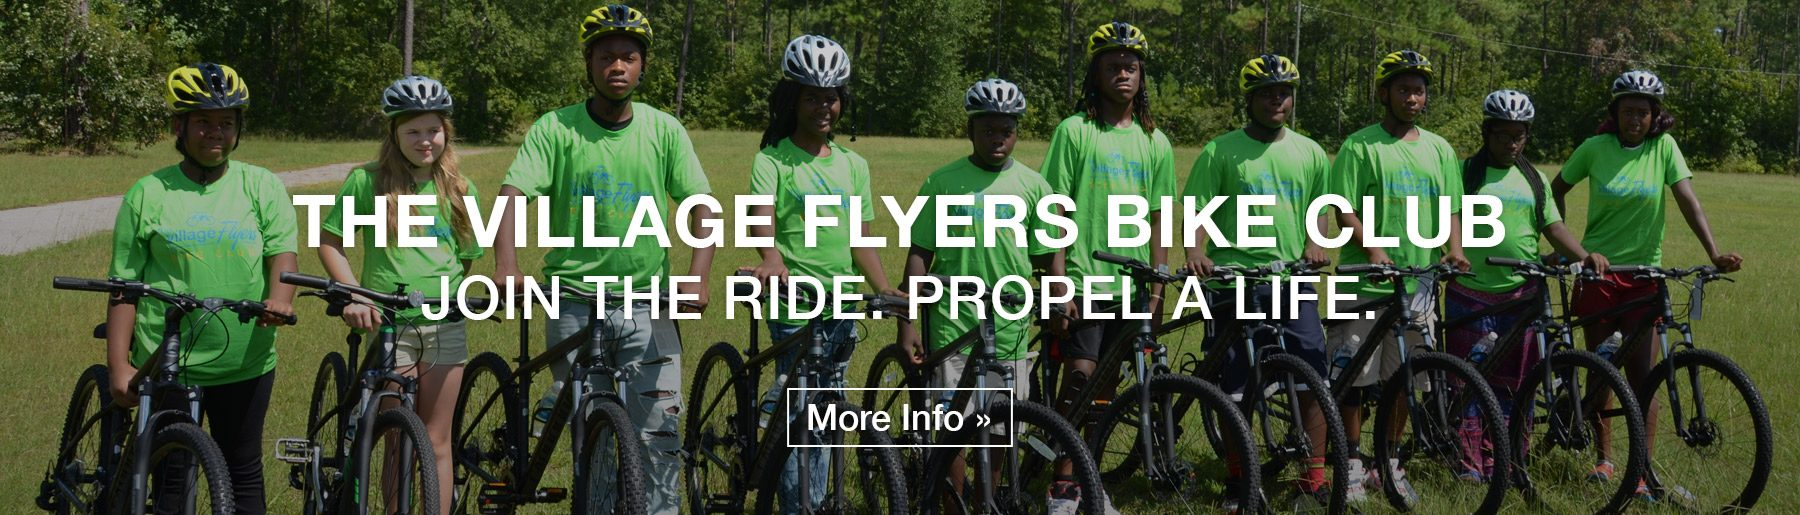 the-village-flyers-bike-club-v2